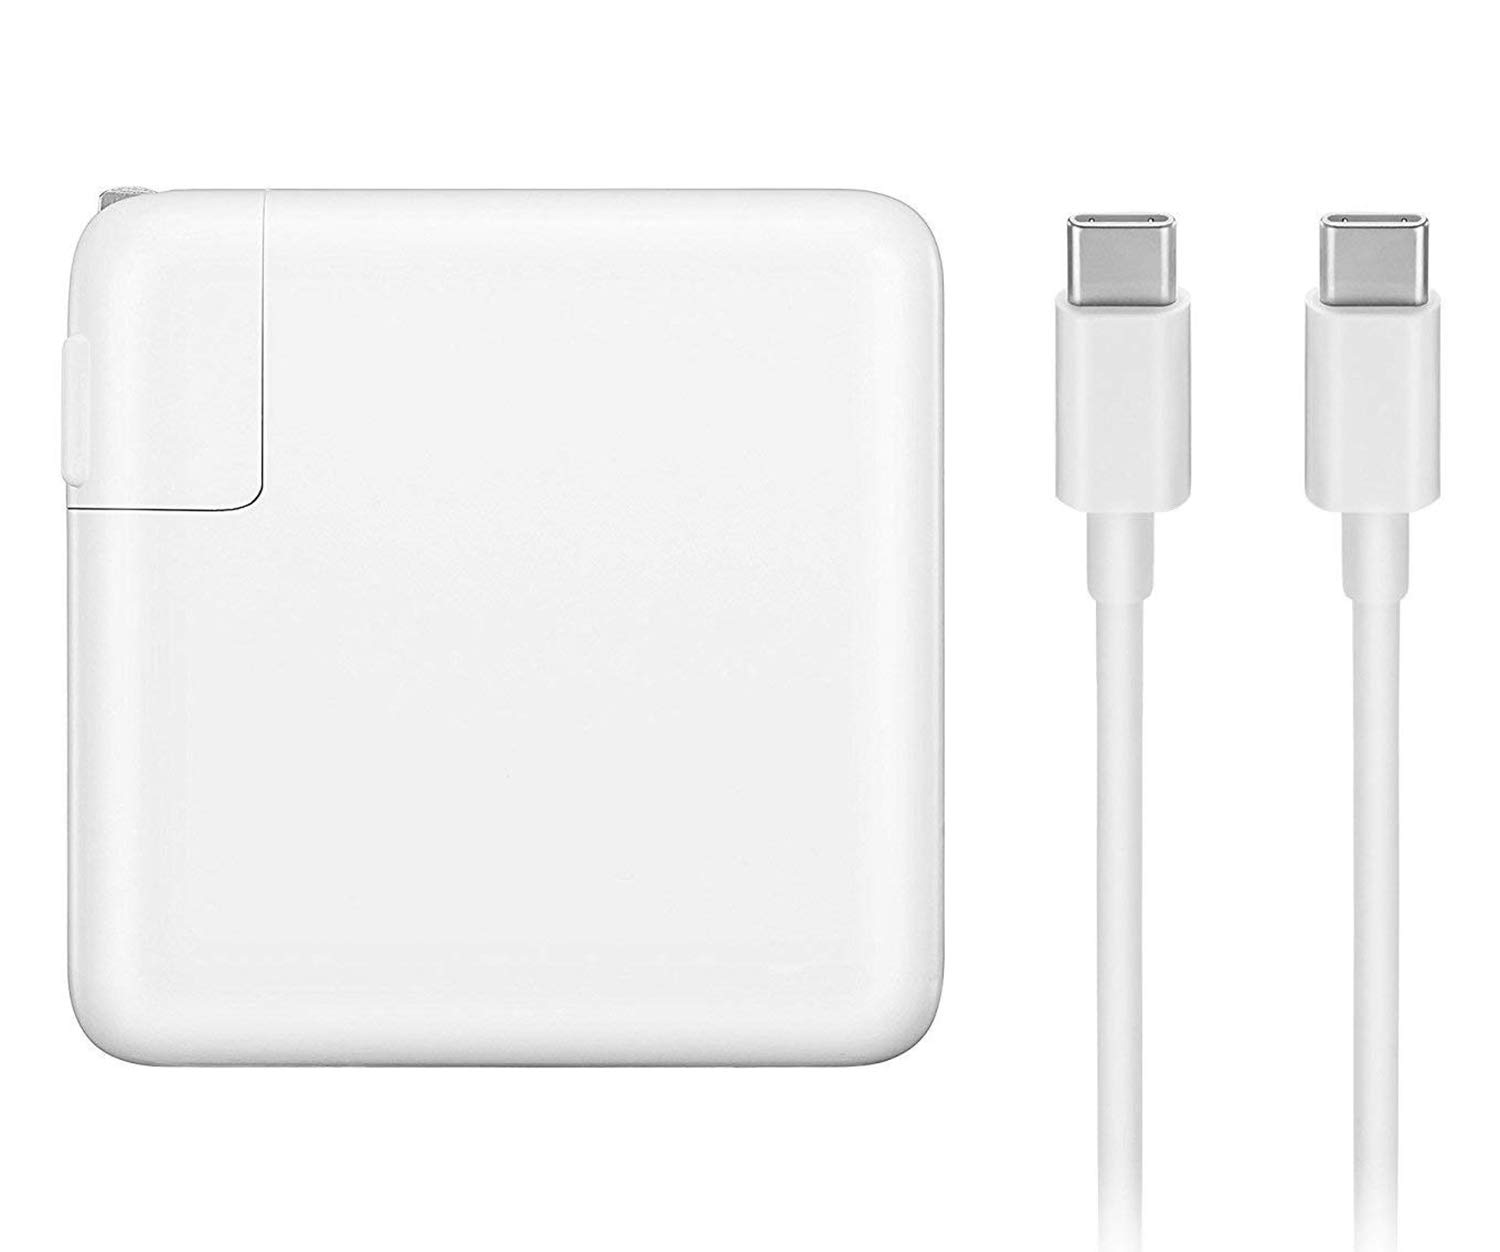 Ewayfa 61W USB-C Power Adapter Charger with USB-C to USB-C Charge Cable(2M)